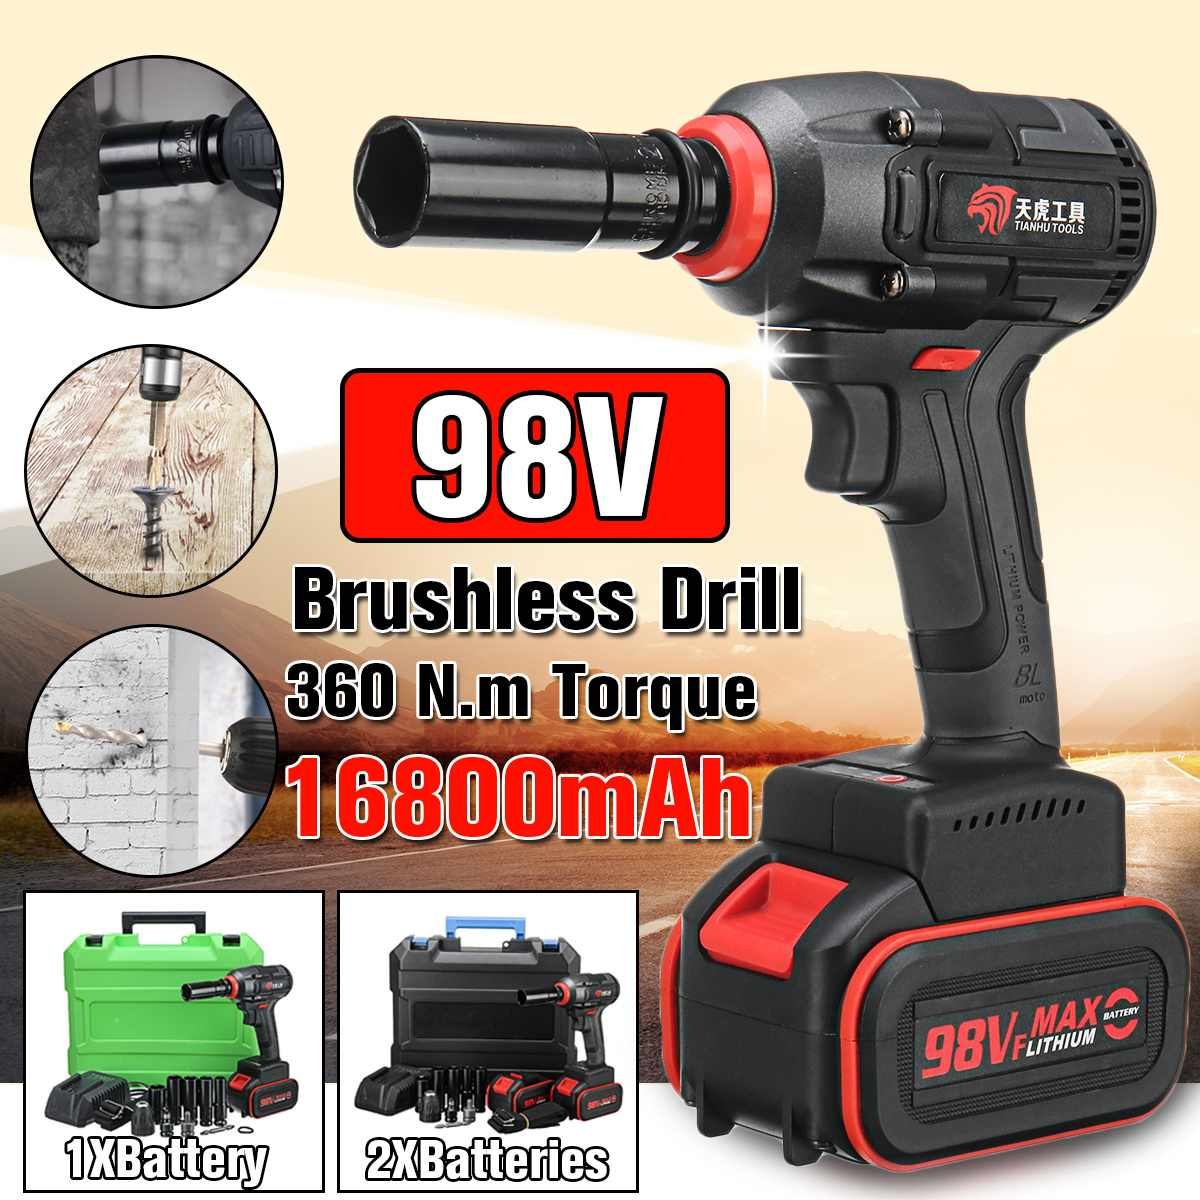 Brushless Electric Wrench Impact Socket Wrench 98V 16800mAh Li Battery Hand Drill Installation Power Tools|Electric Wrenches| |  - title=